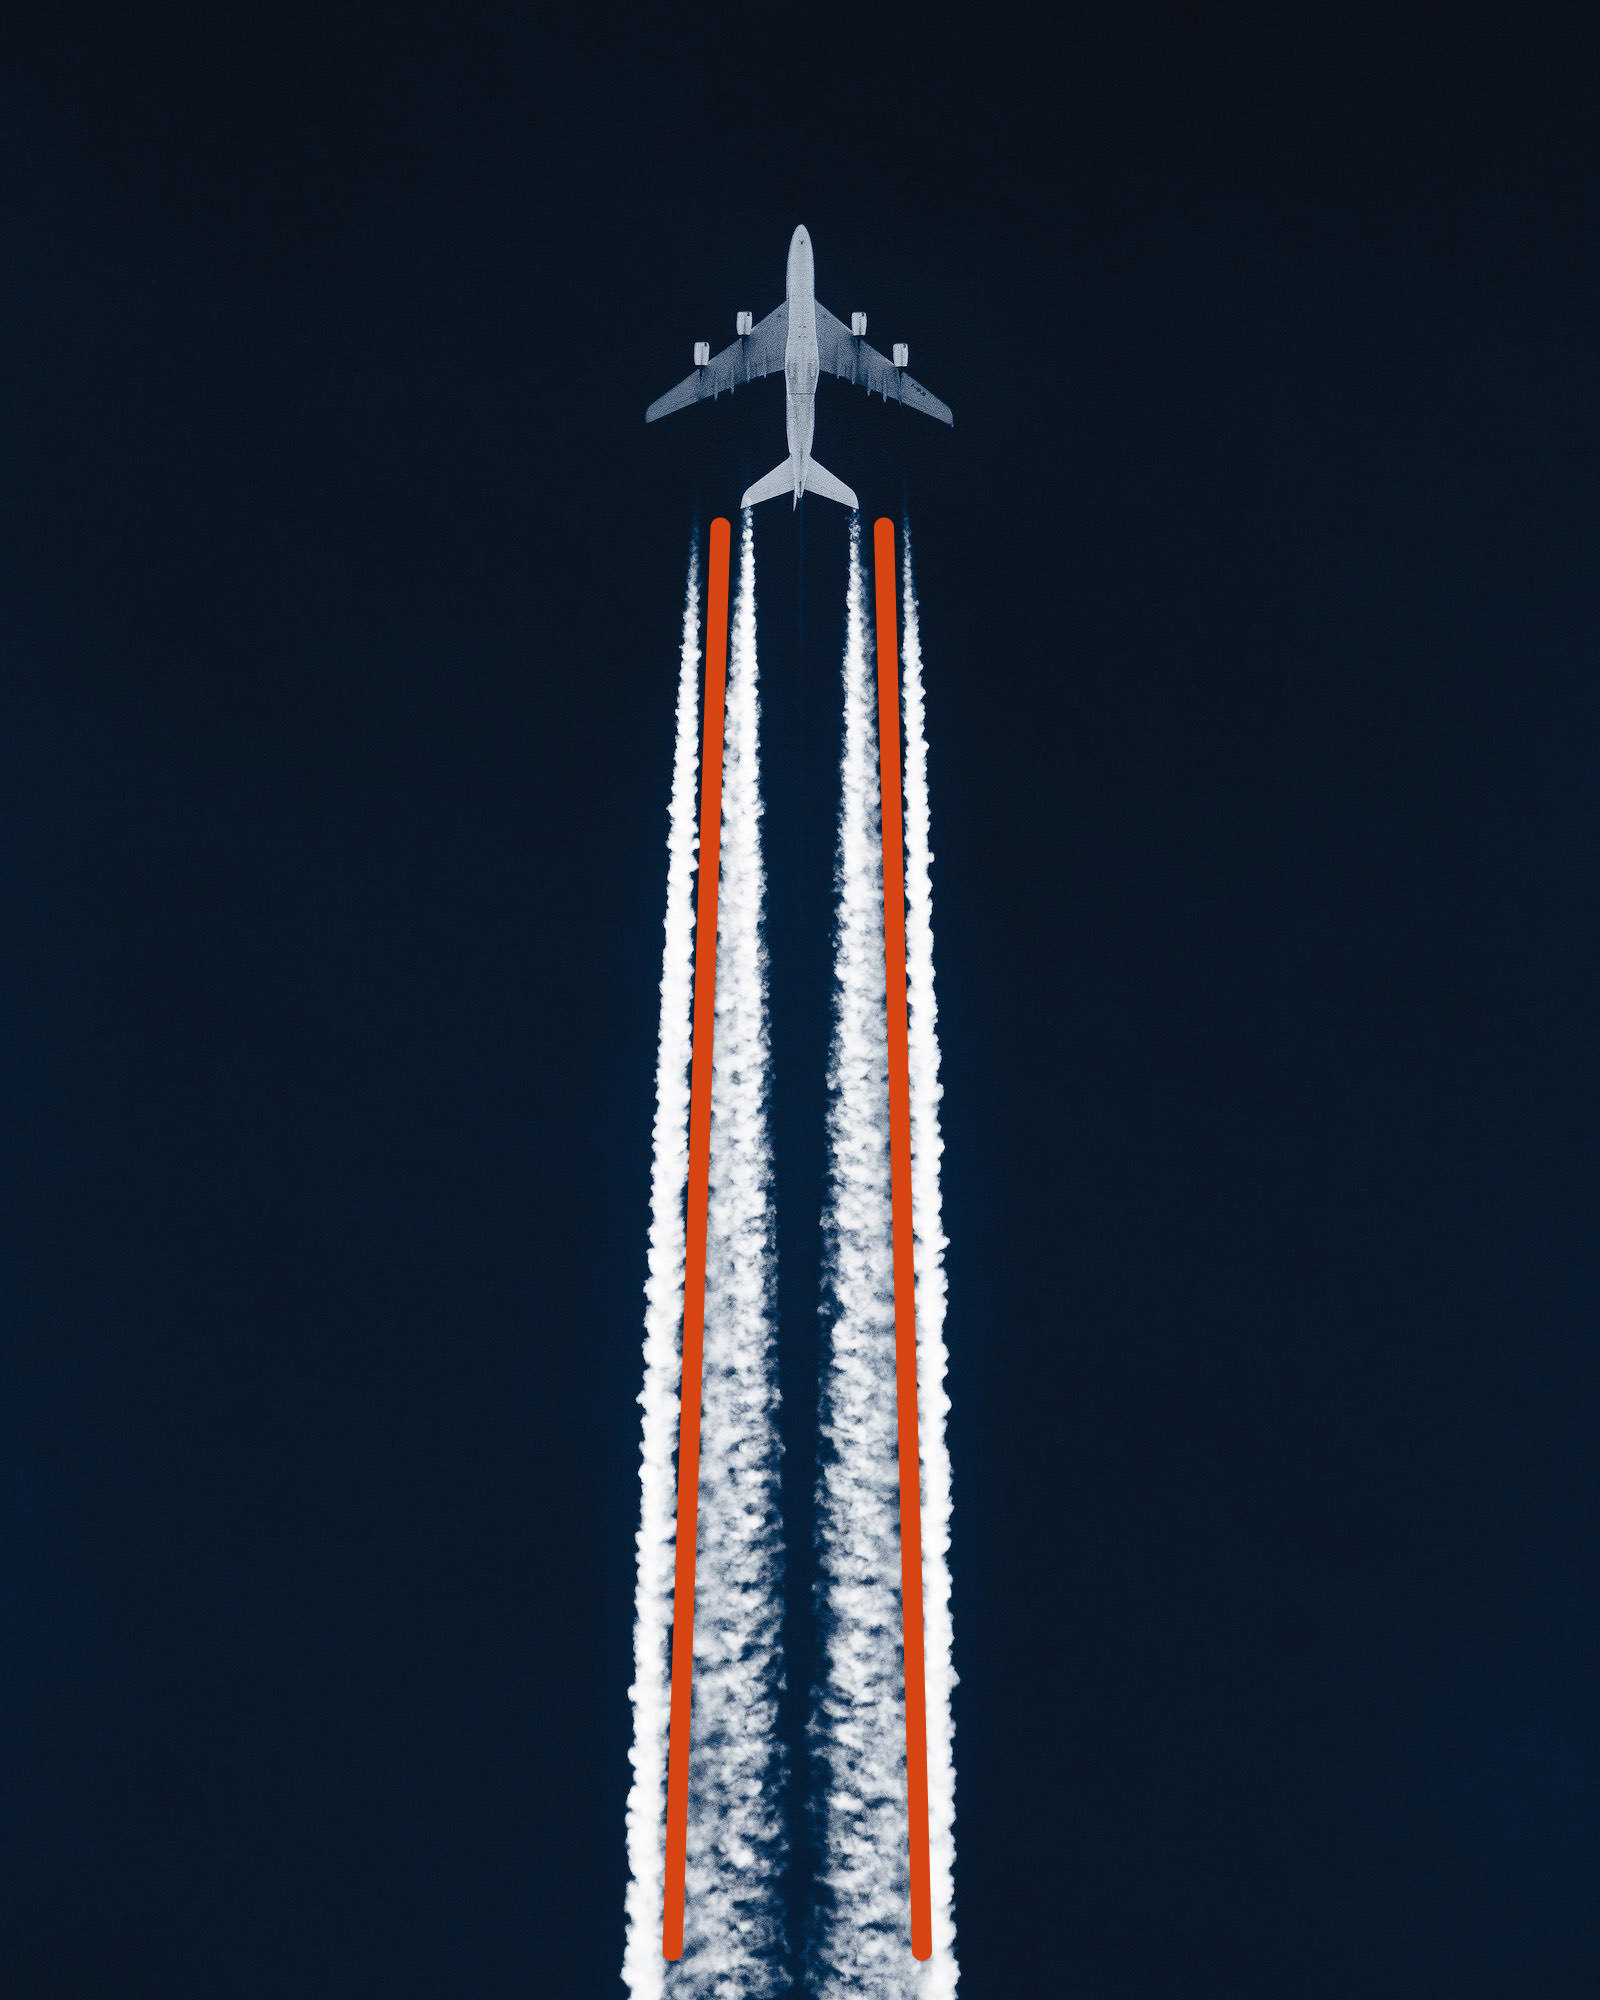 Passenger airplane cruising in the sky leaving contrails behind it, with added leading lines showing the compositional technique